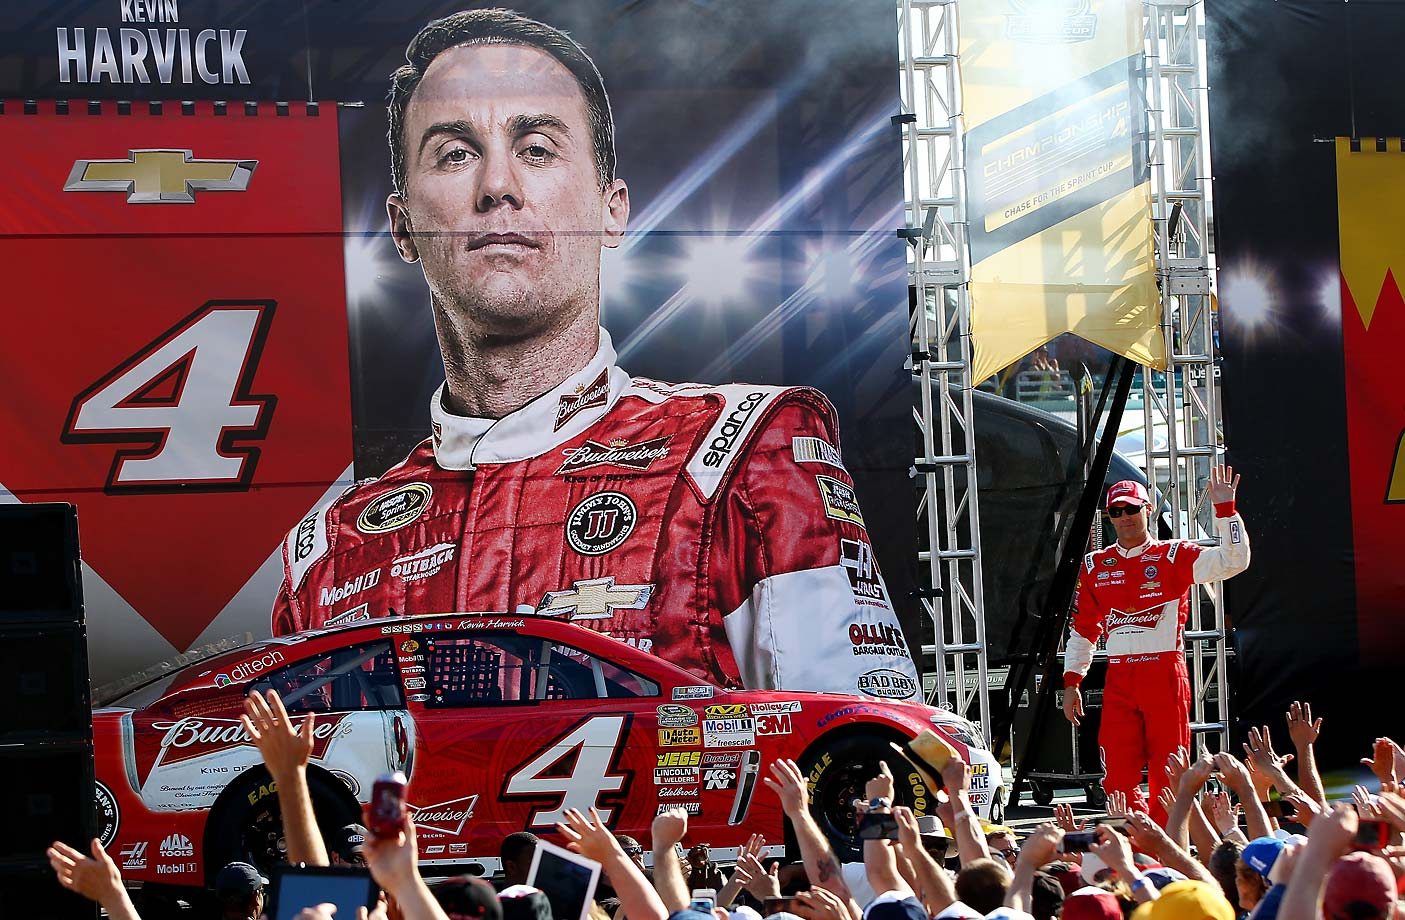 Kevin Harvick greets fans prior to the NASCAR Sprint Cup Series Ford EcoBoost 400 at Homestead-Miami Speedway on November 16, 2014.